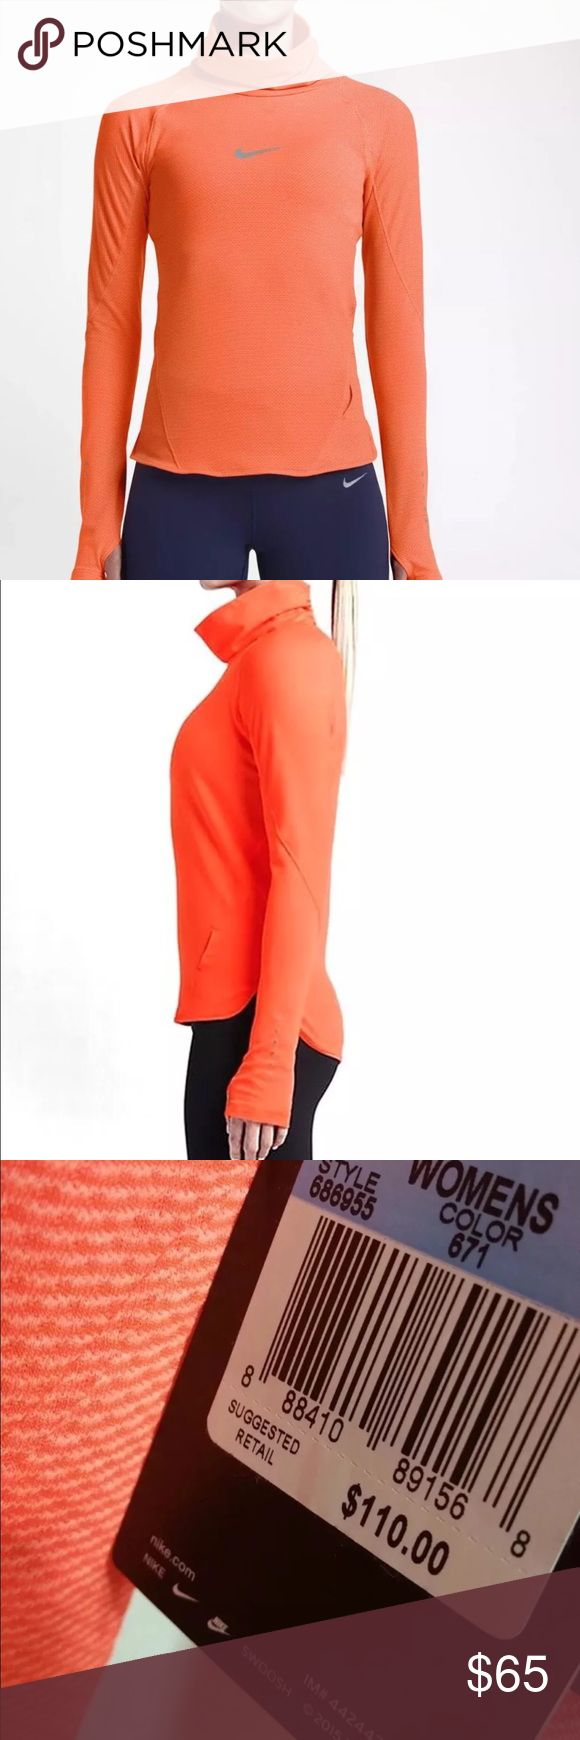 Nike AeroReact Pullover Running Training-Casual, Brand New With Tags! Nike AeroReact Pullover Women's Running Top NEW $110 Gym-Training-Casual, Style: 686955 Color: 671 (Neon Orange-Reflective Silver) Price: $110.00  Nike AeroReact fabric uses fibers that open to increase airflow when you sweat and close when you cool down, providing adaptable, breathable performance Thumbholes at the cuffs help keep the sleeves inlace and provide added warmth.  Cowl-neck design and dropped back hem for…